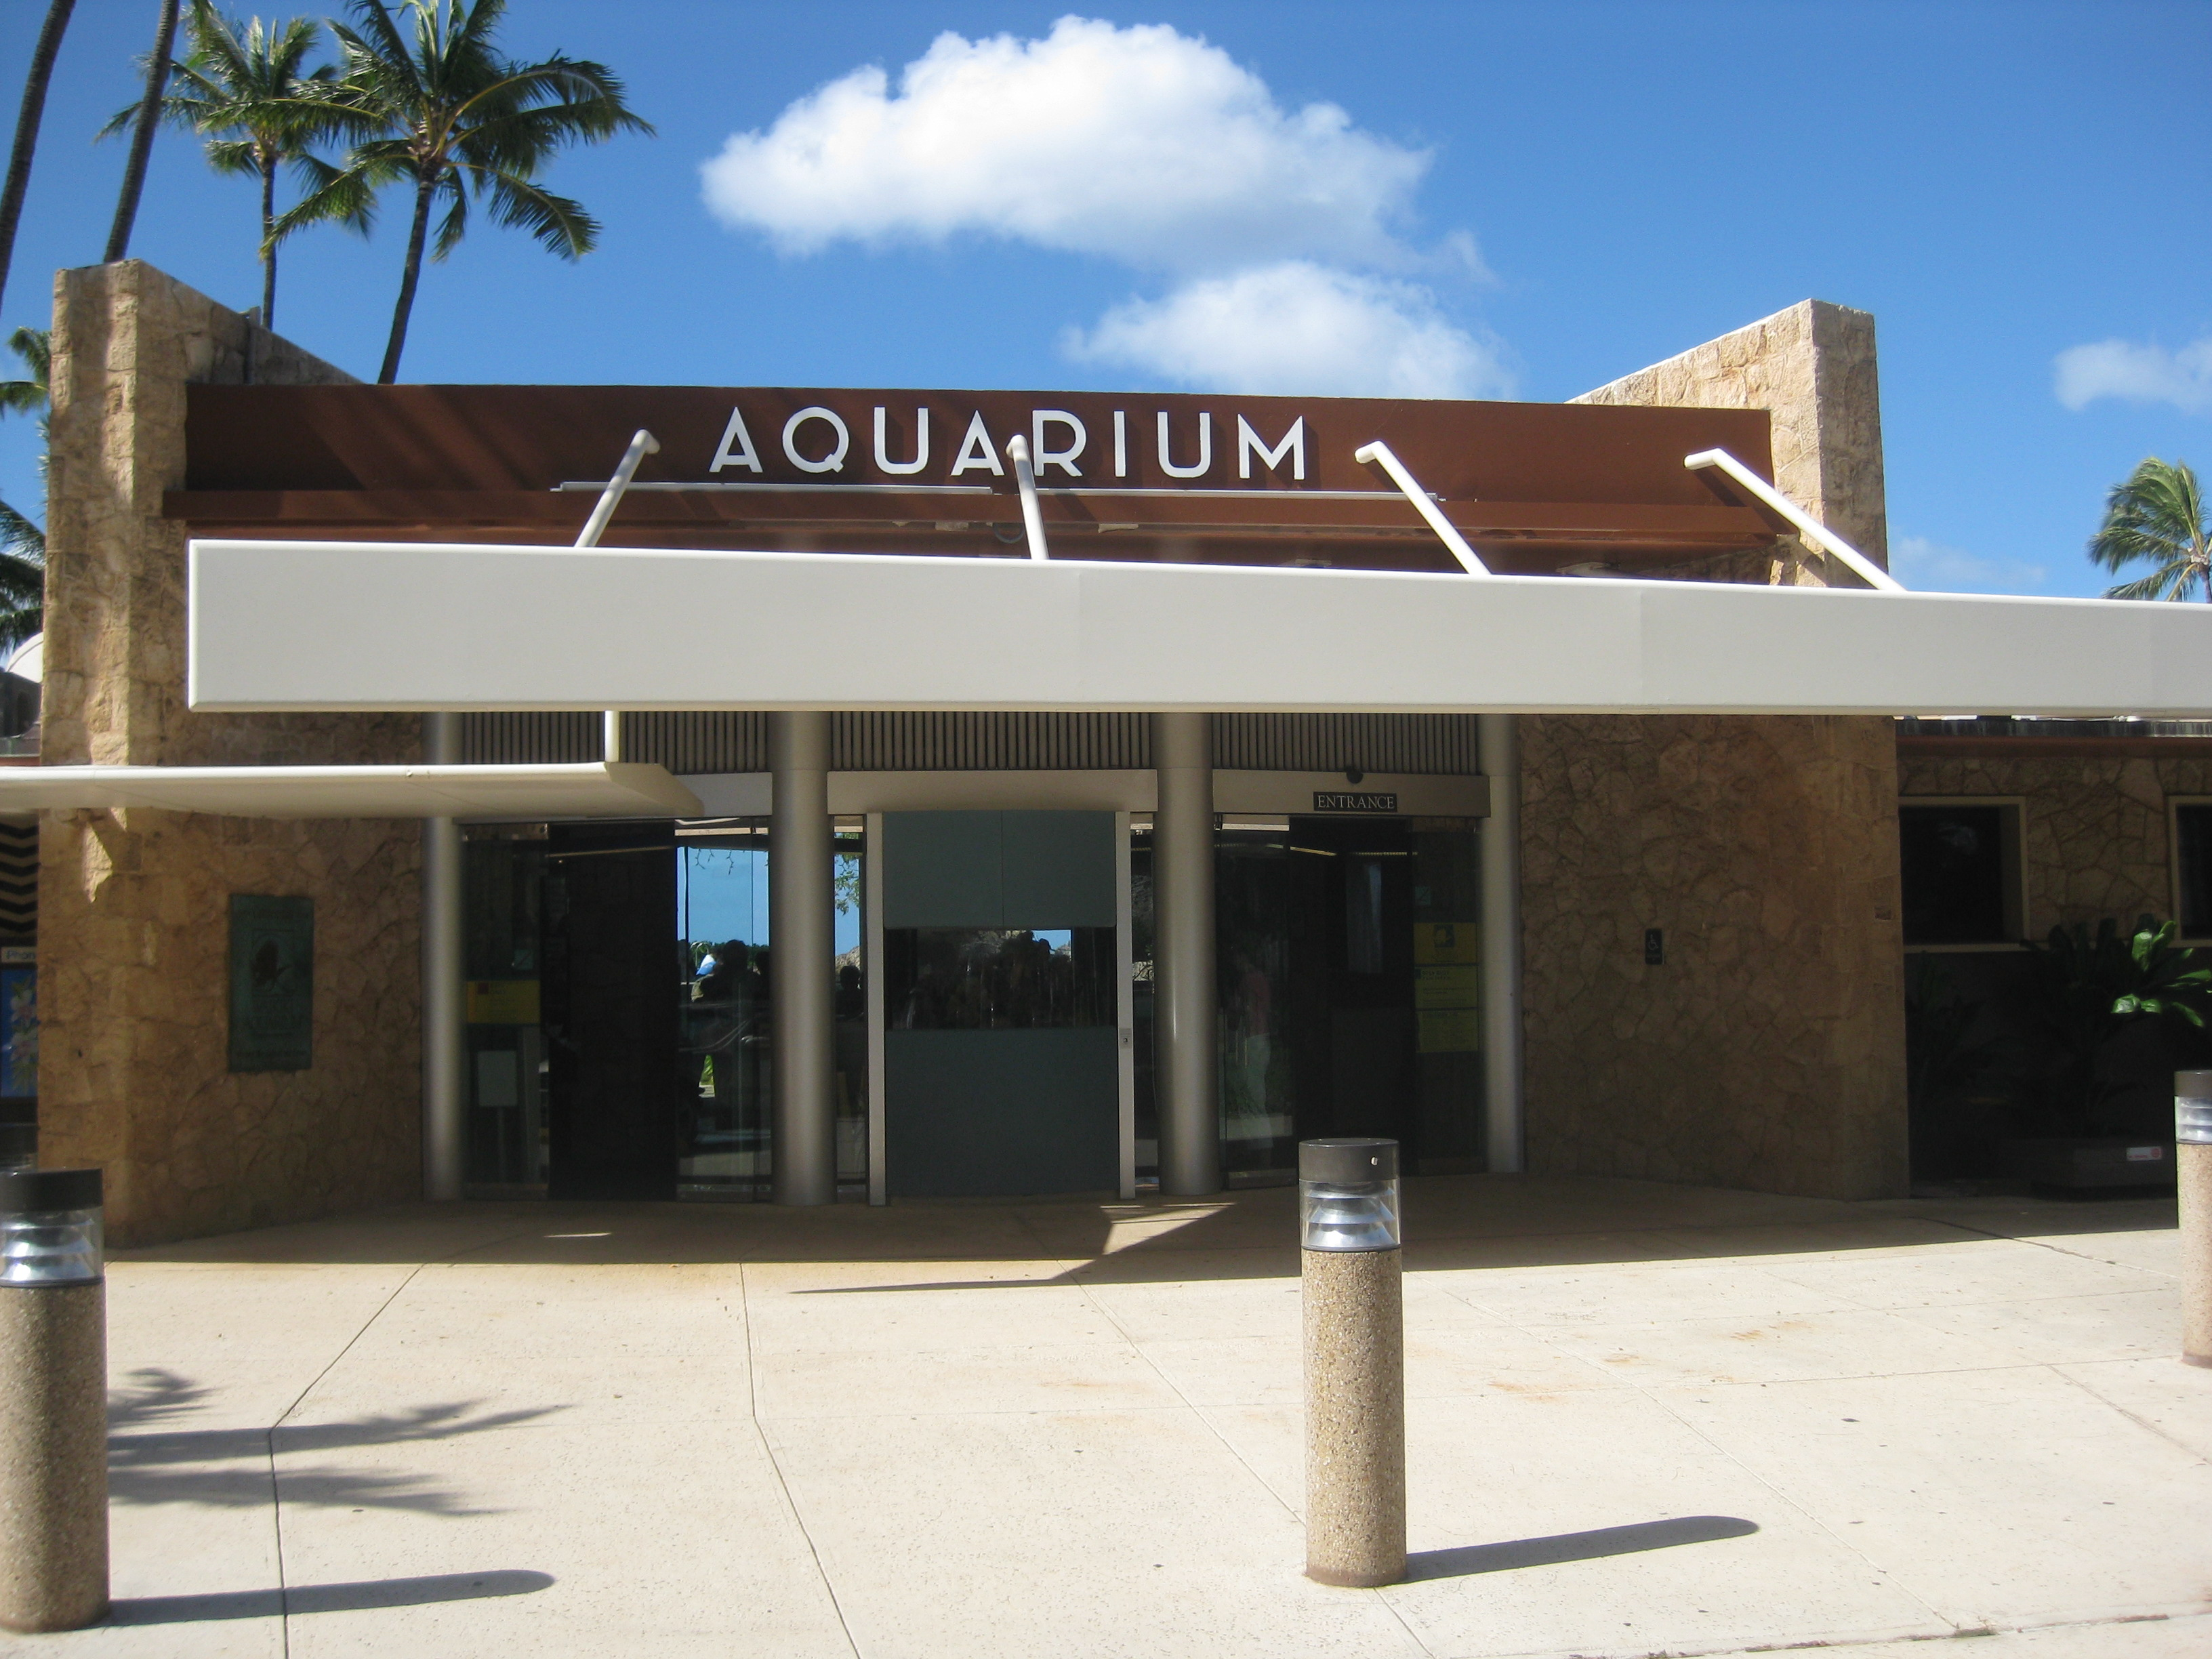 Waikiki Aquarium entrance.JPG